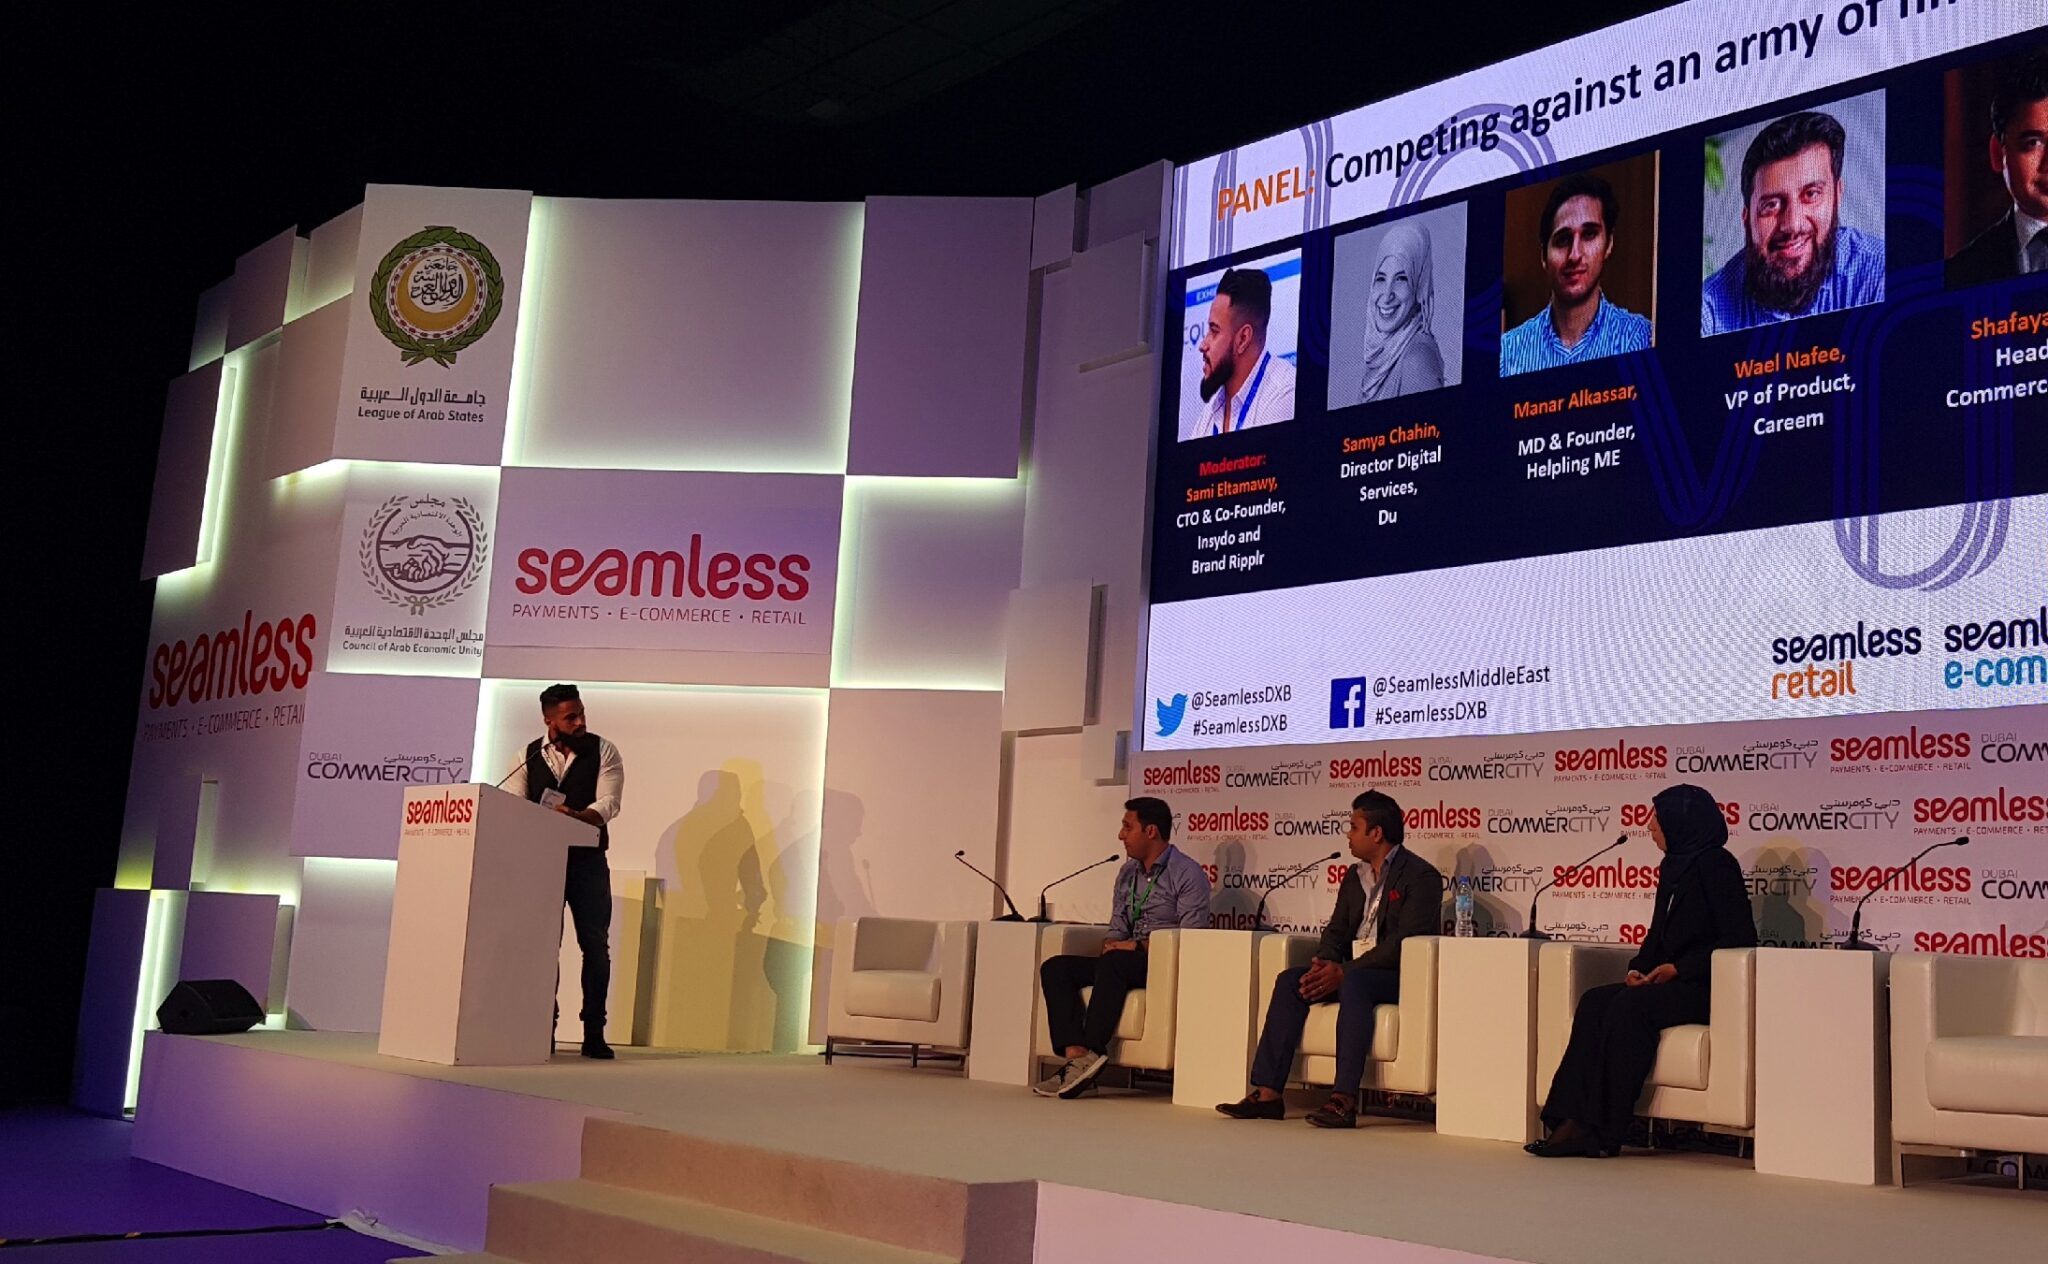 Planet of Apps panel discussion at seamless 2018